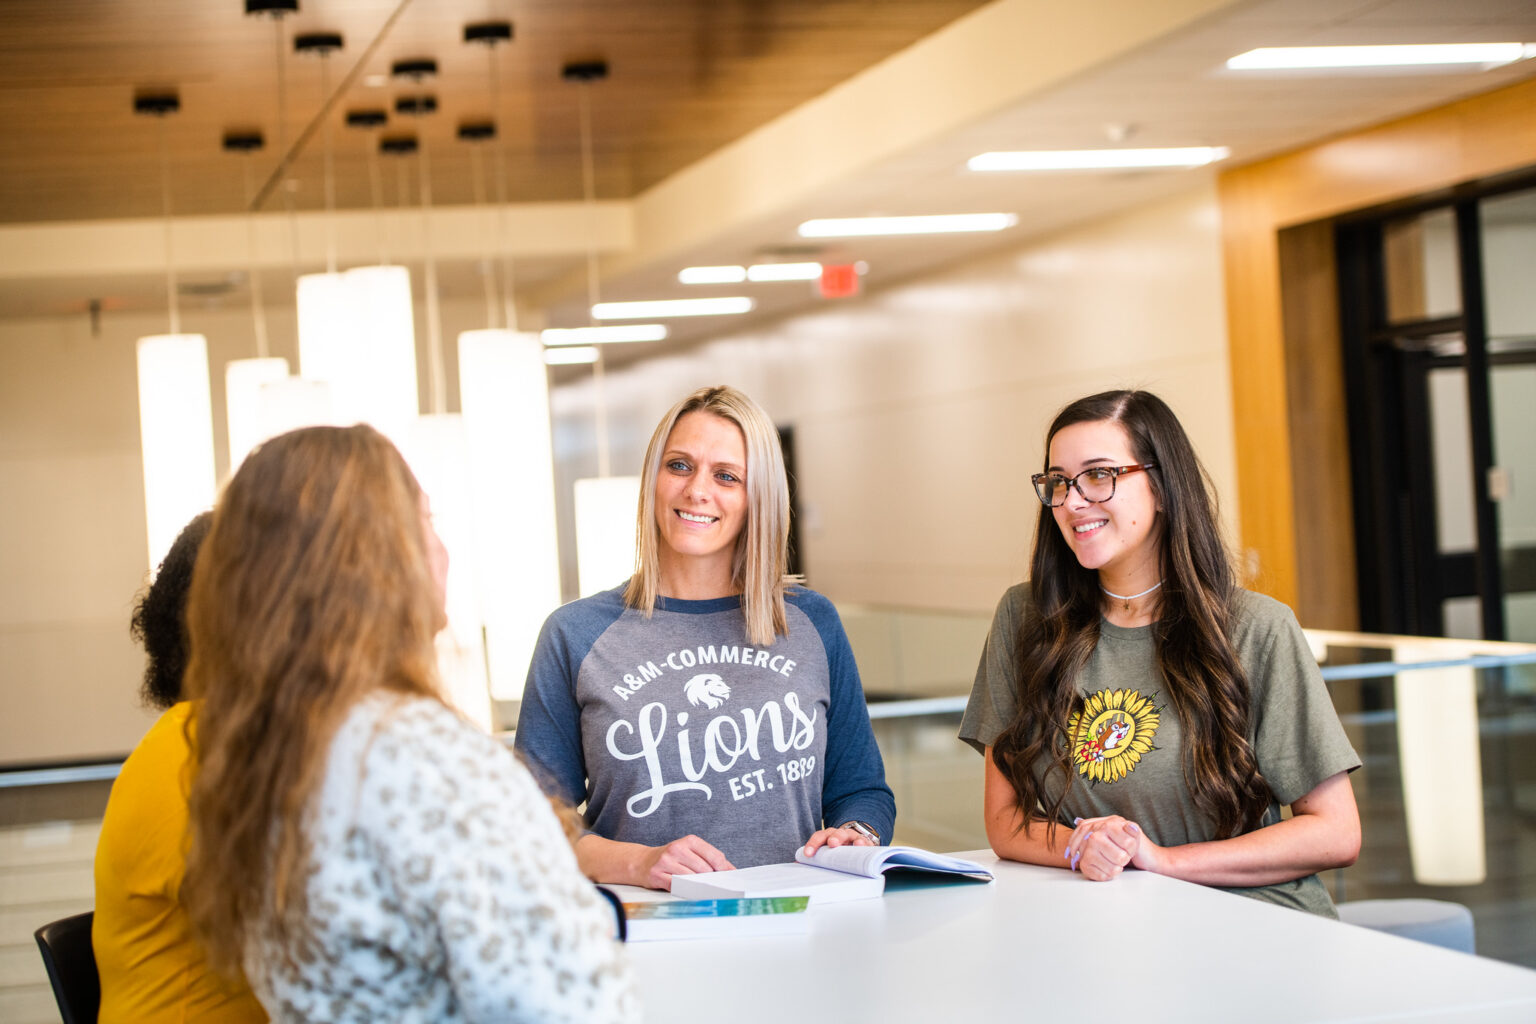 A group of 4 females talking with a book open on a table.